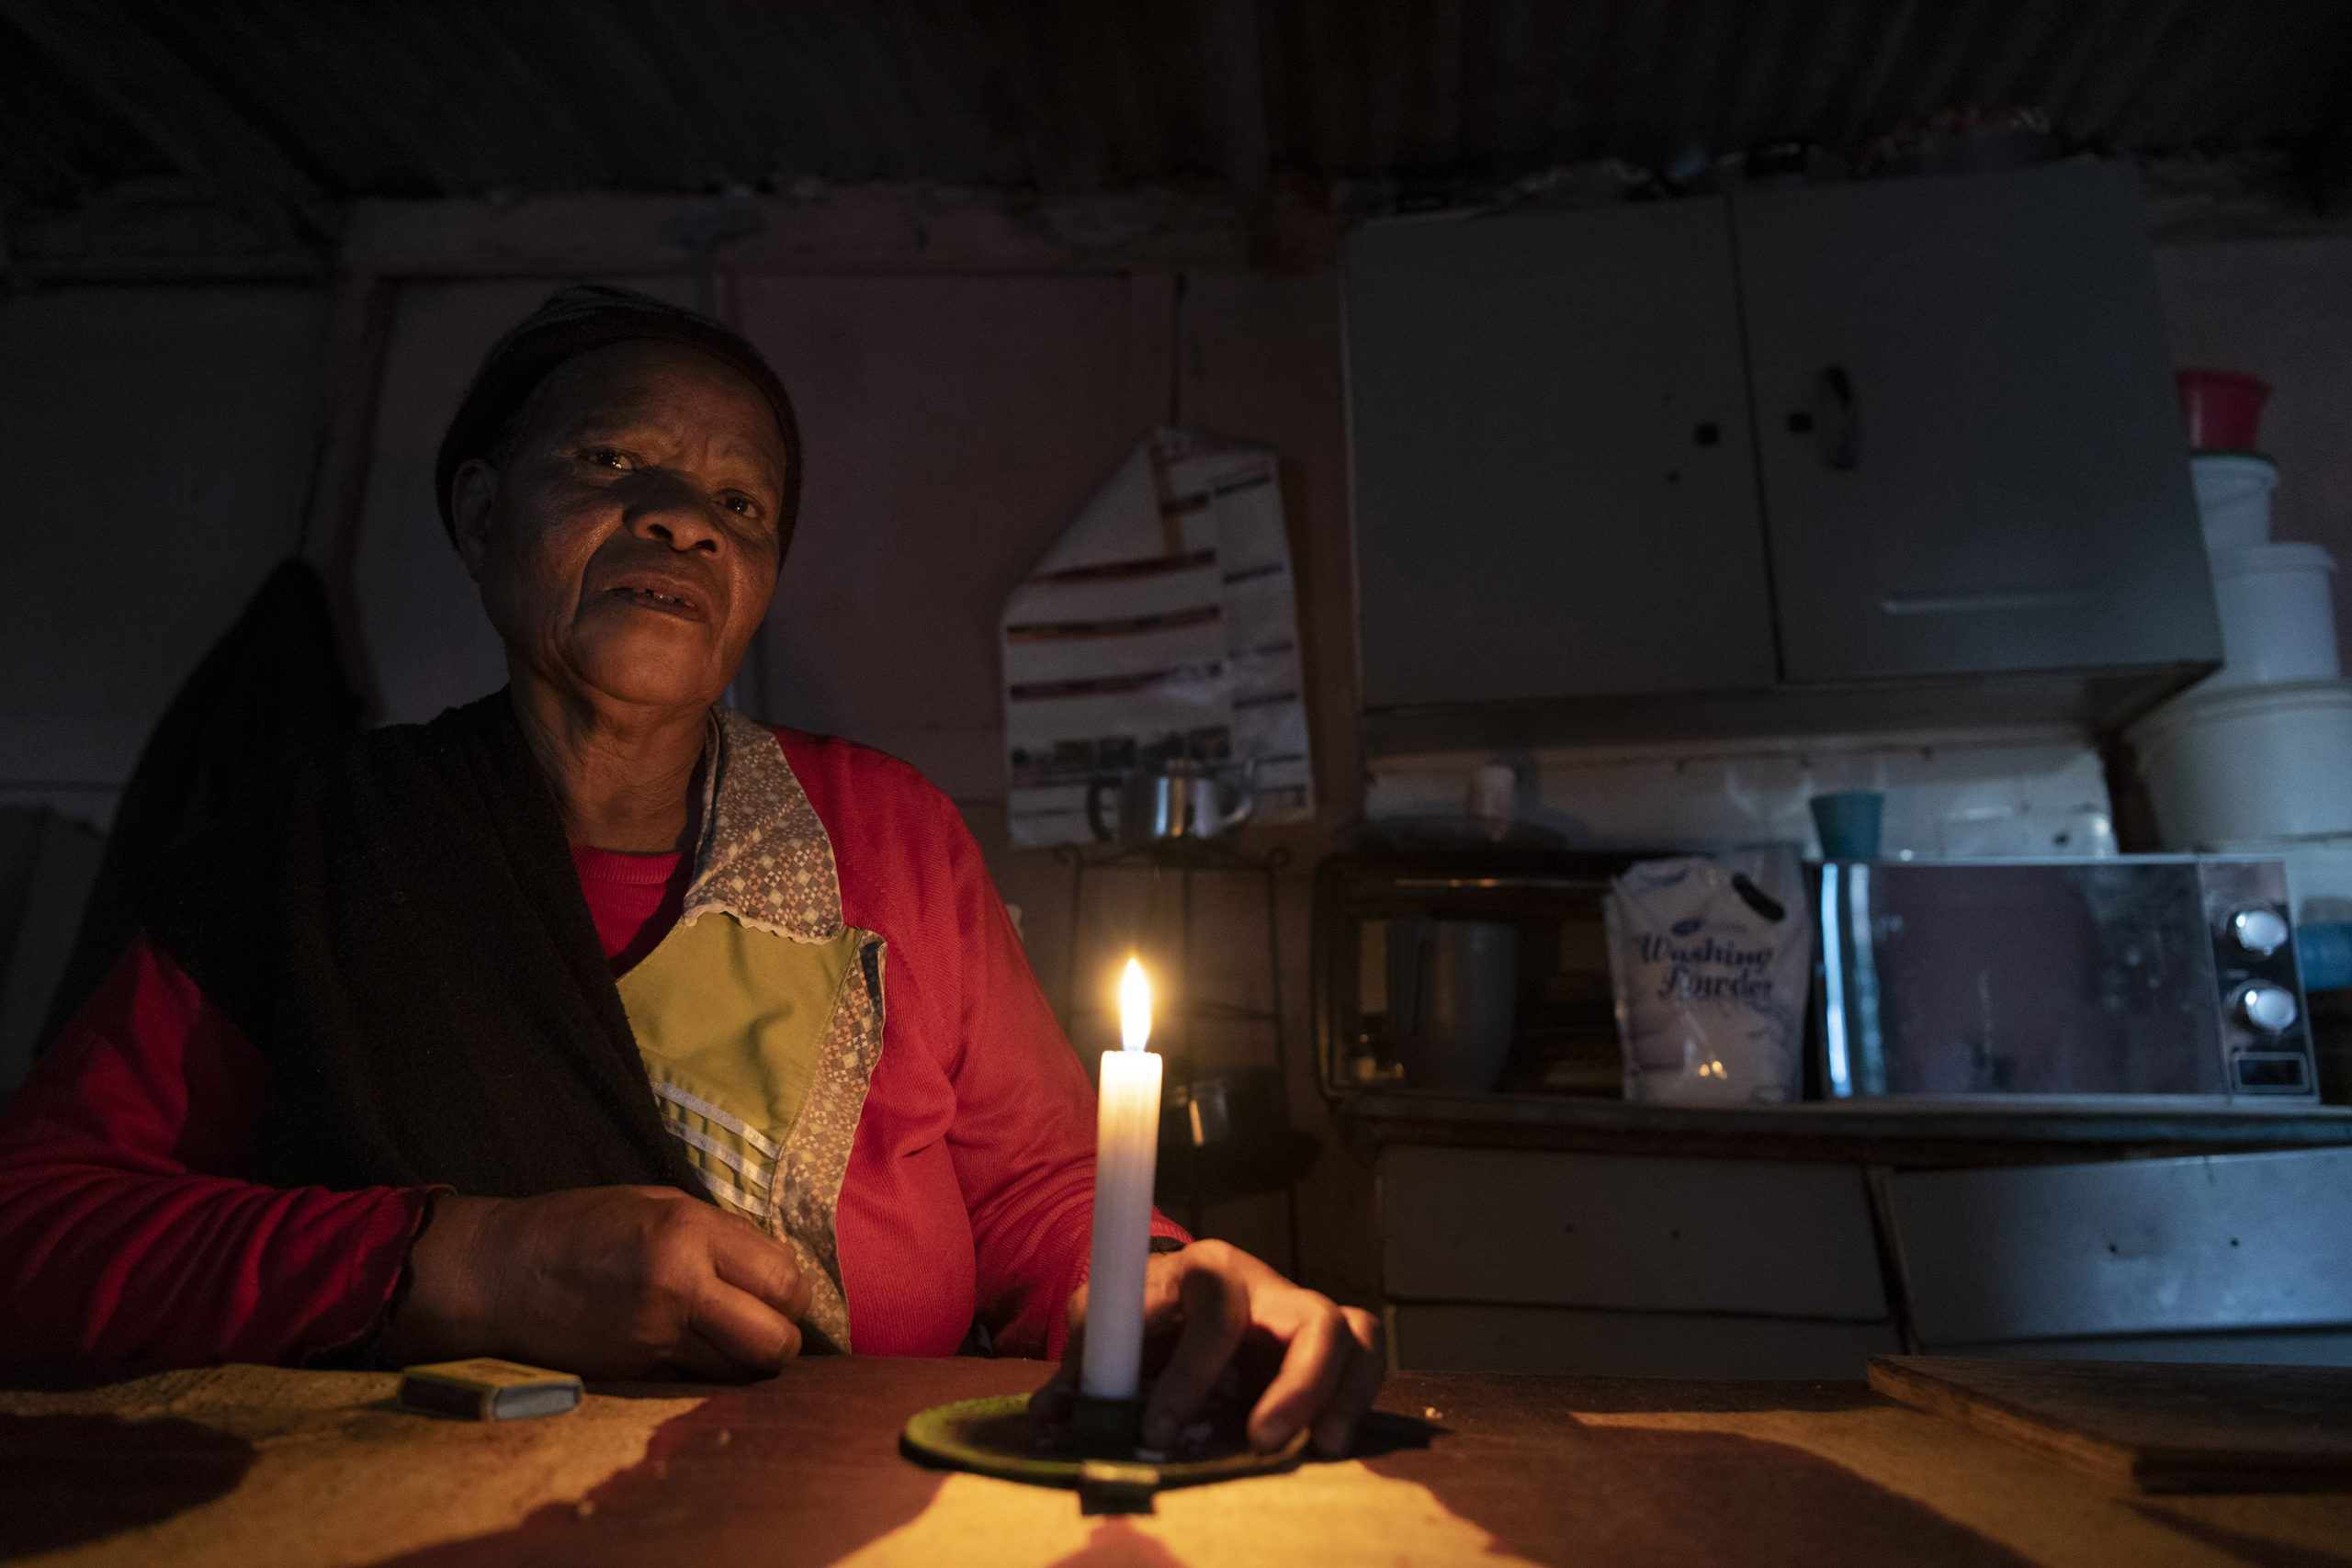 22 June 2020: Thandi Magxotywa inside her shack home in Stjwetla. Electricity supply is erratic and she has to make use of candles for light and a paraffin stove for warmth in winter. (Photograph by Ihsaan Haffejee)